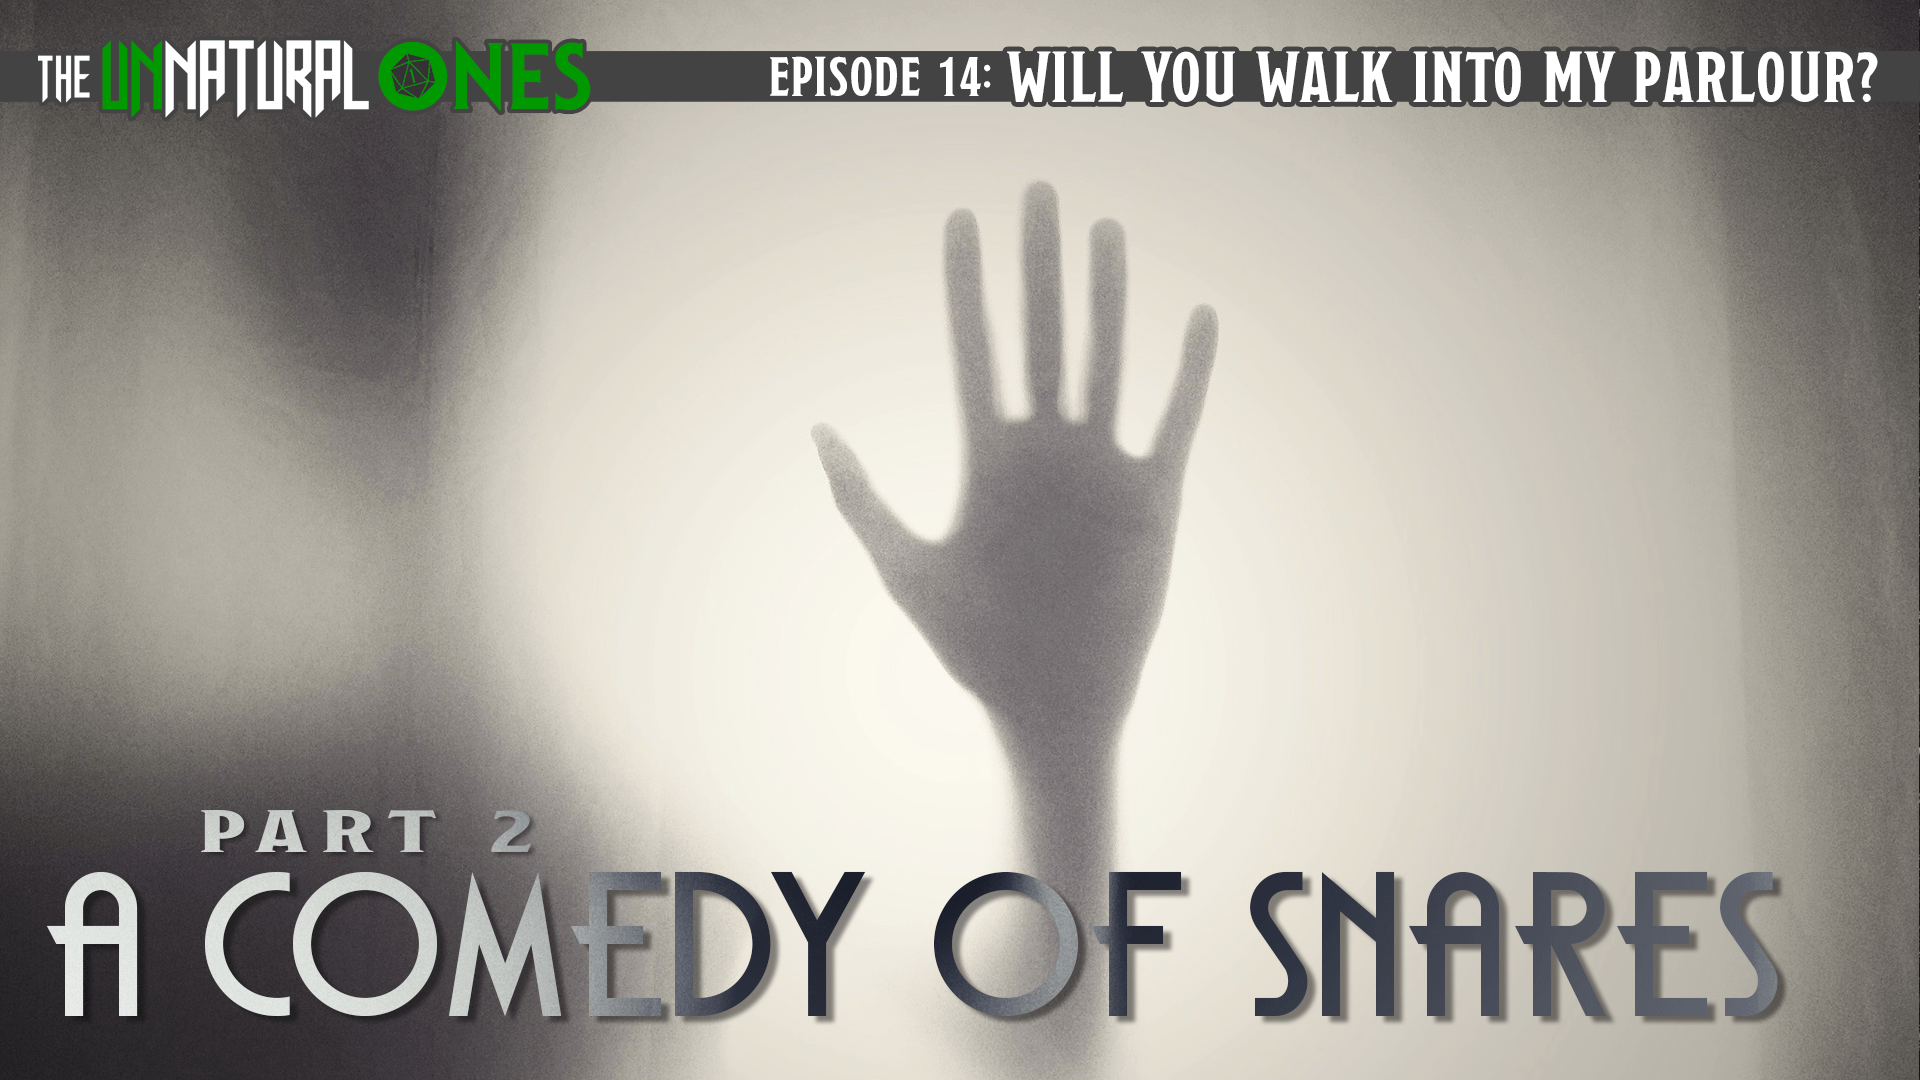 Episode 14: Will You Walk Into My Parlour? – Part 2